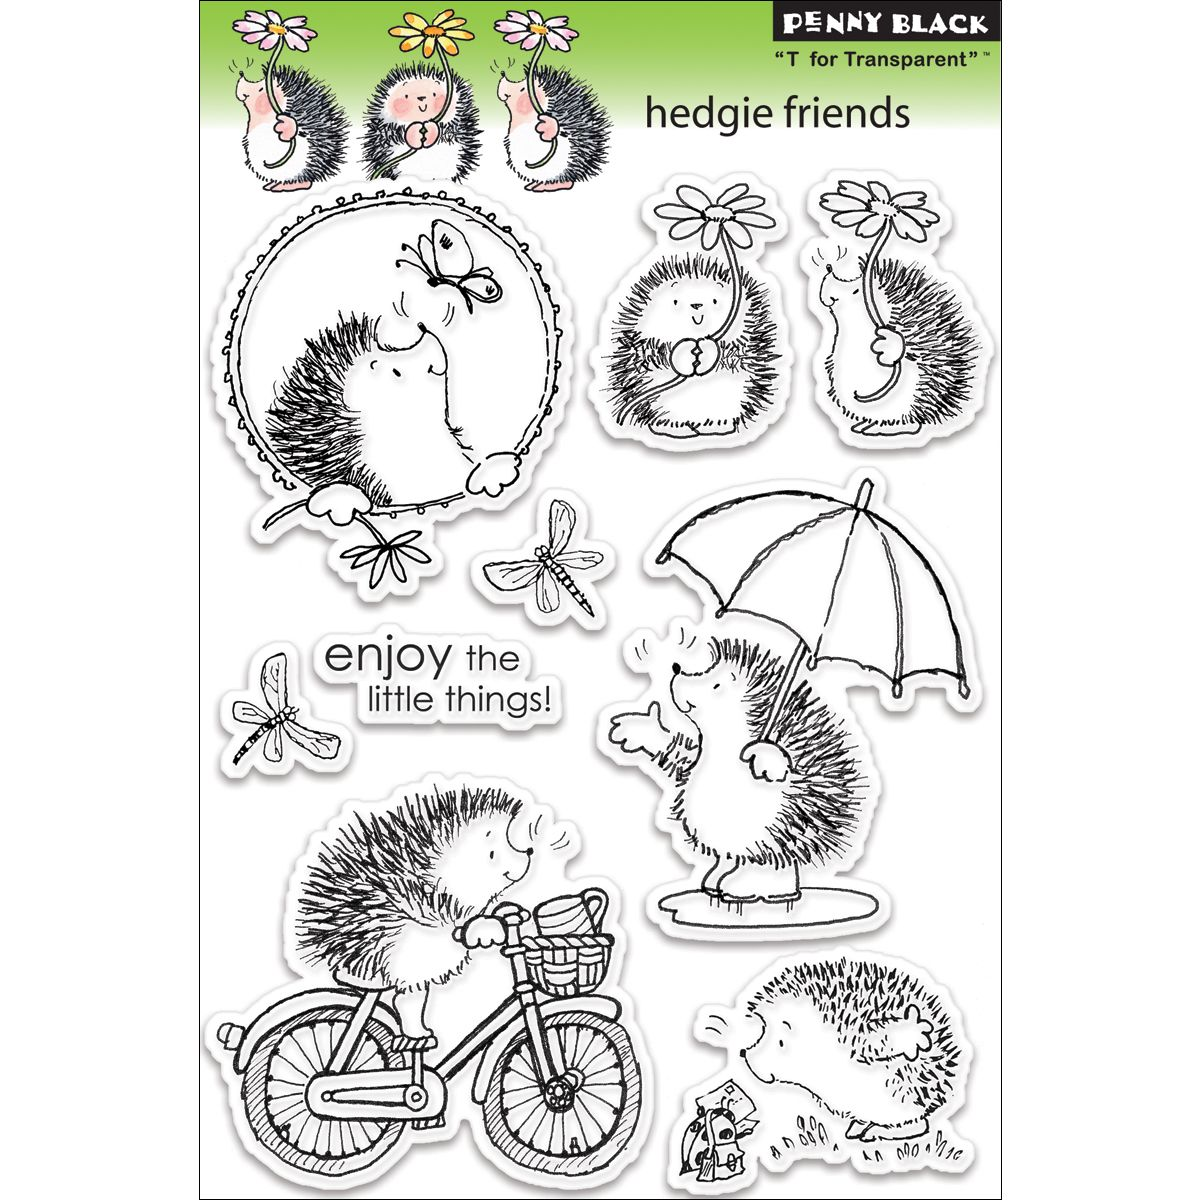 Penny Black Clear Cling Stamps Overstock Shopping The Best Prices Online Penny Black Stamps Penny Black Clear Stamps